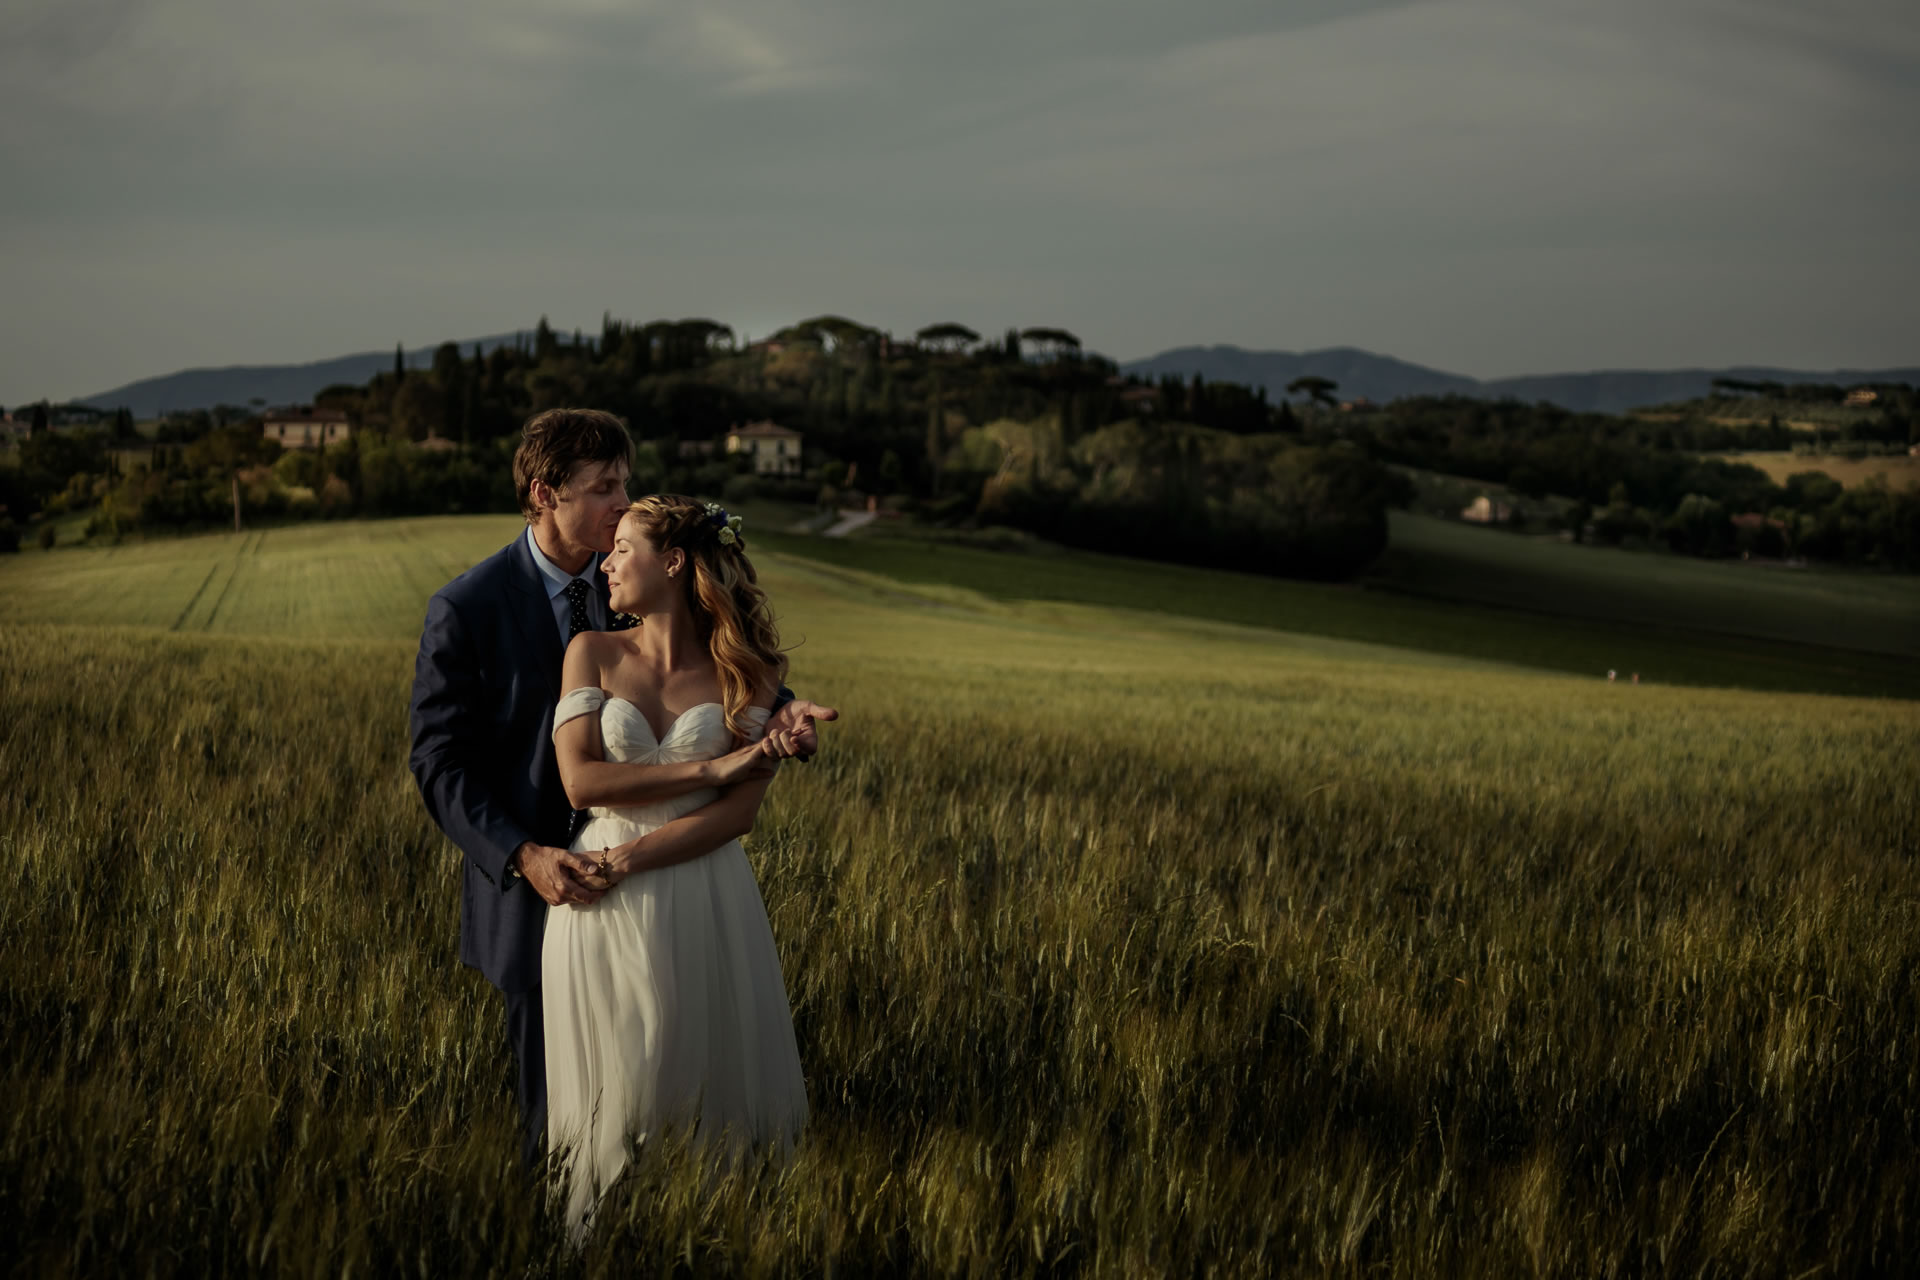 Umbria - 26 :: Wedding in Perugia countryside. Jean and Toby :: Luxury wedding photography - 25 :: Umbria - 26